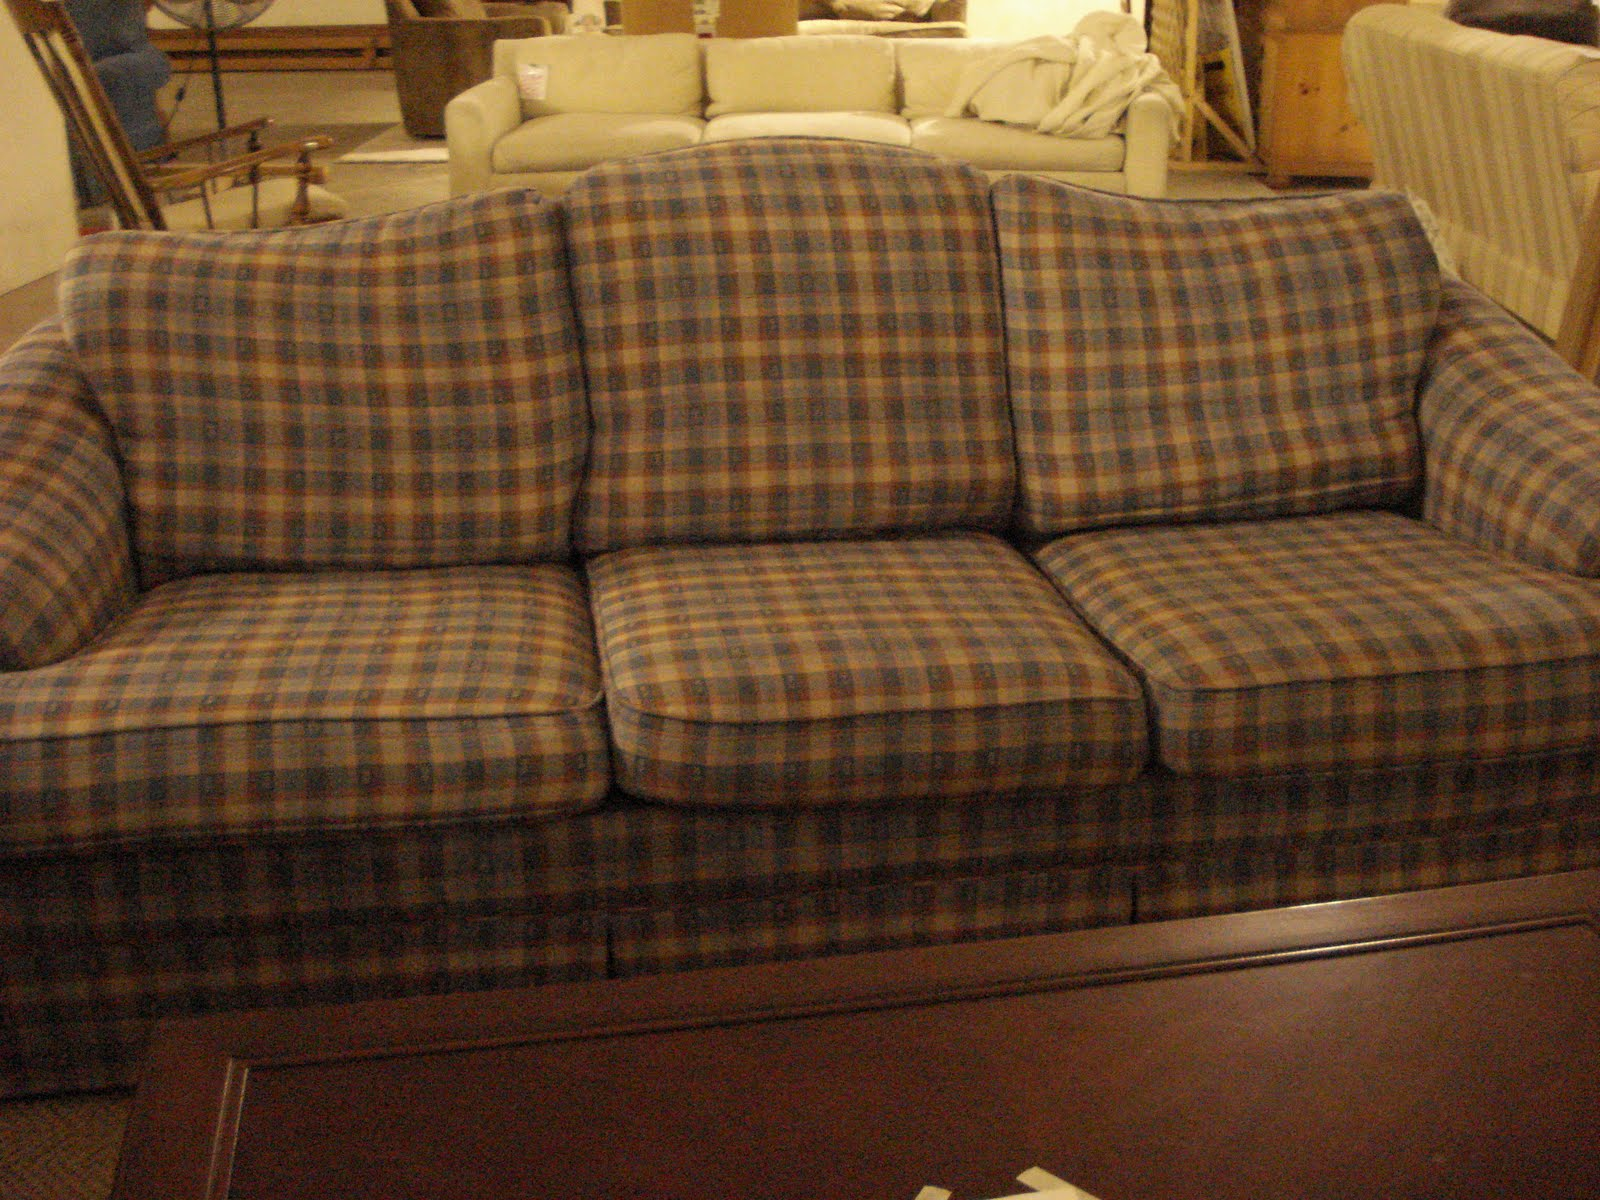 Country Plaid Sofa Sets Trundle Bed Sectional Ashley Furniture Home Of The Weird Yet Harmless